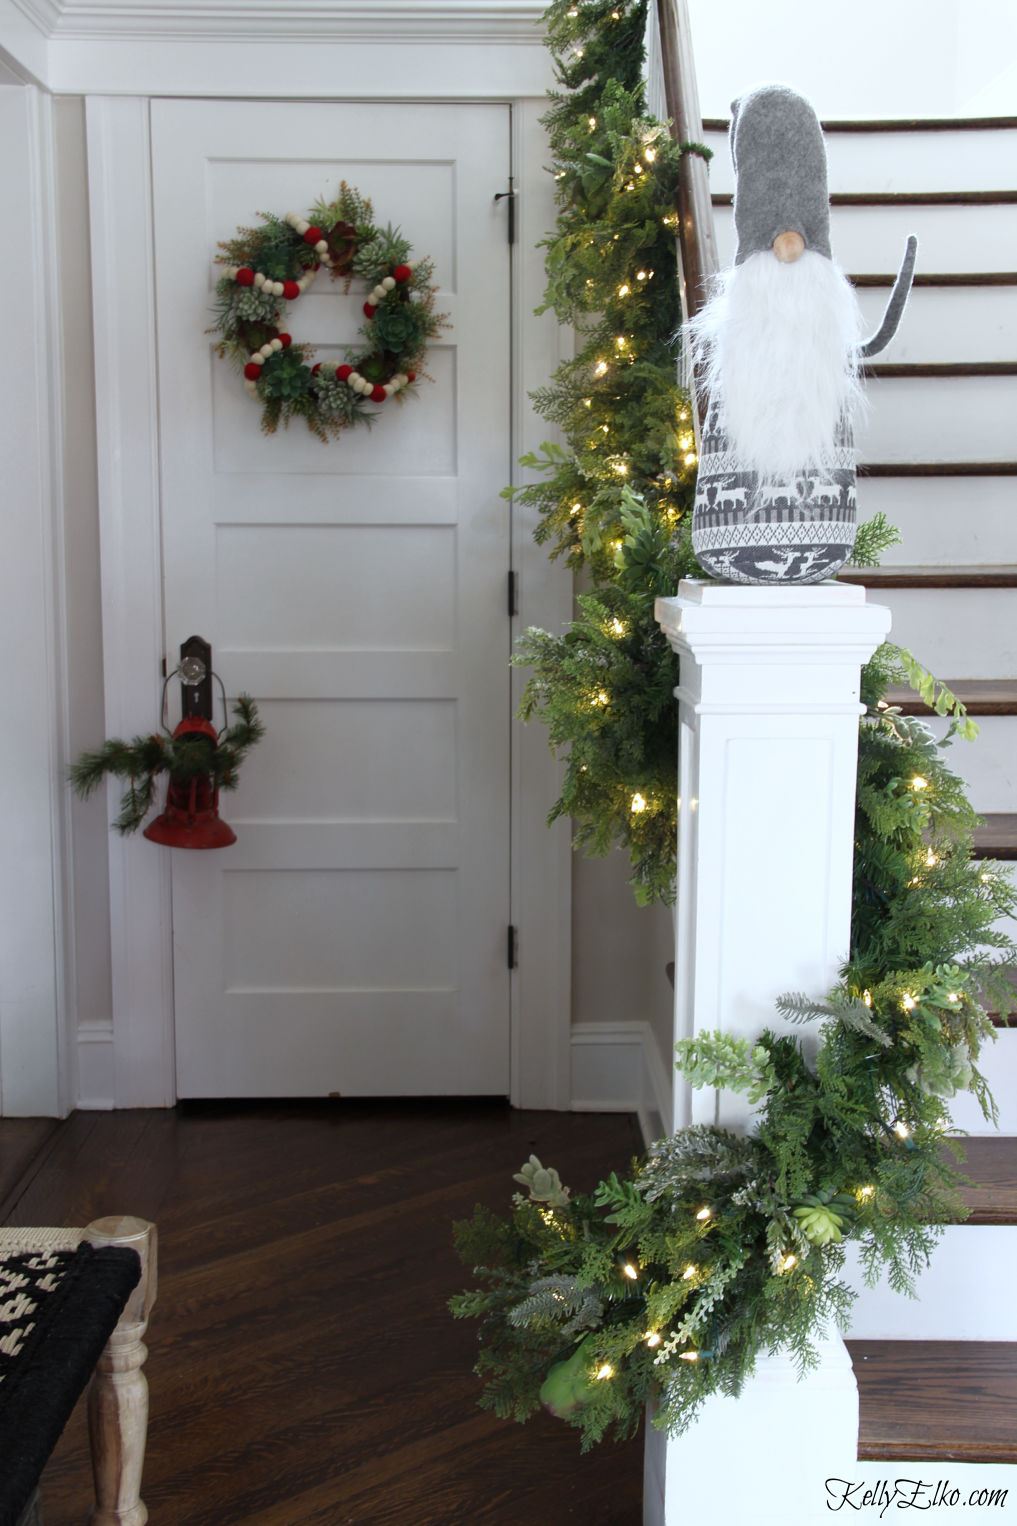 Love her creative Christmas home and the succulent garland on the bannister kellyelko.com #christmas #christmasdecor #christmasfoyer #diychristmas #gnomes #diywreath #christmashome